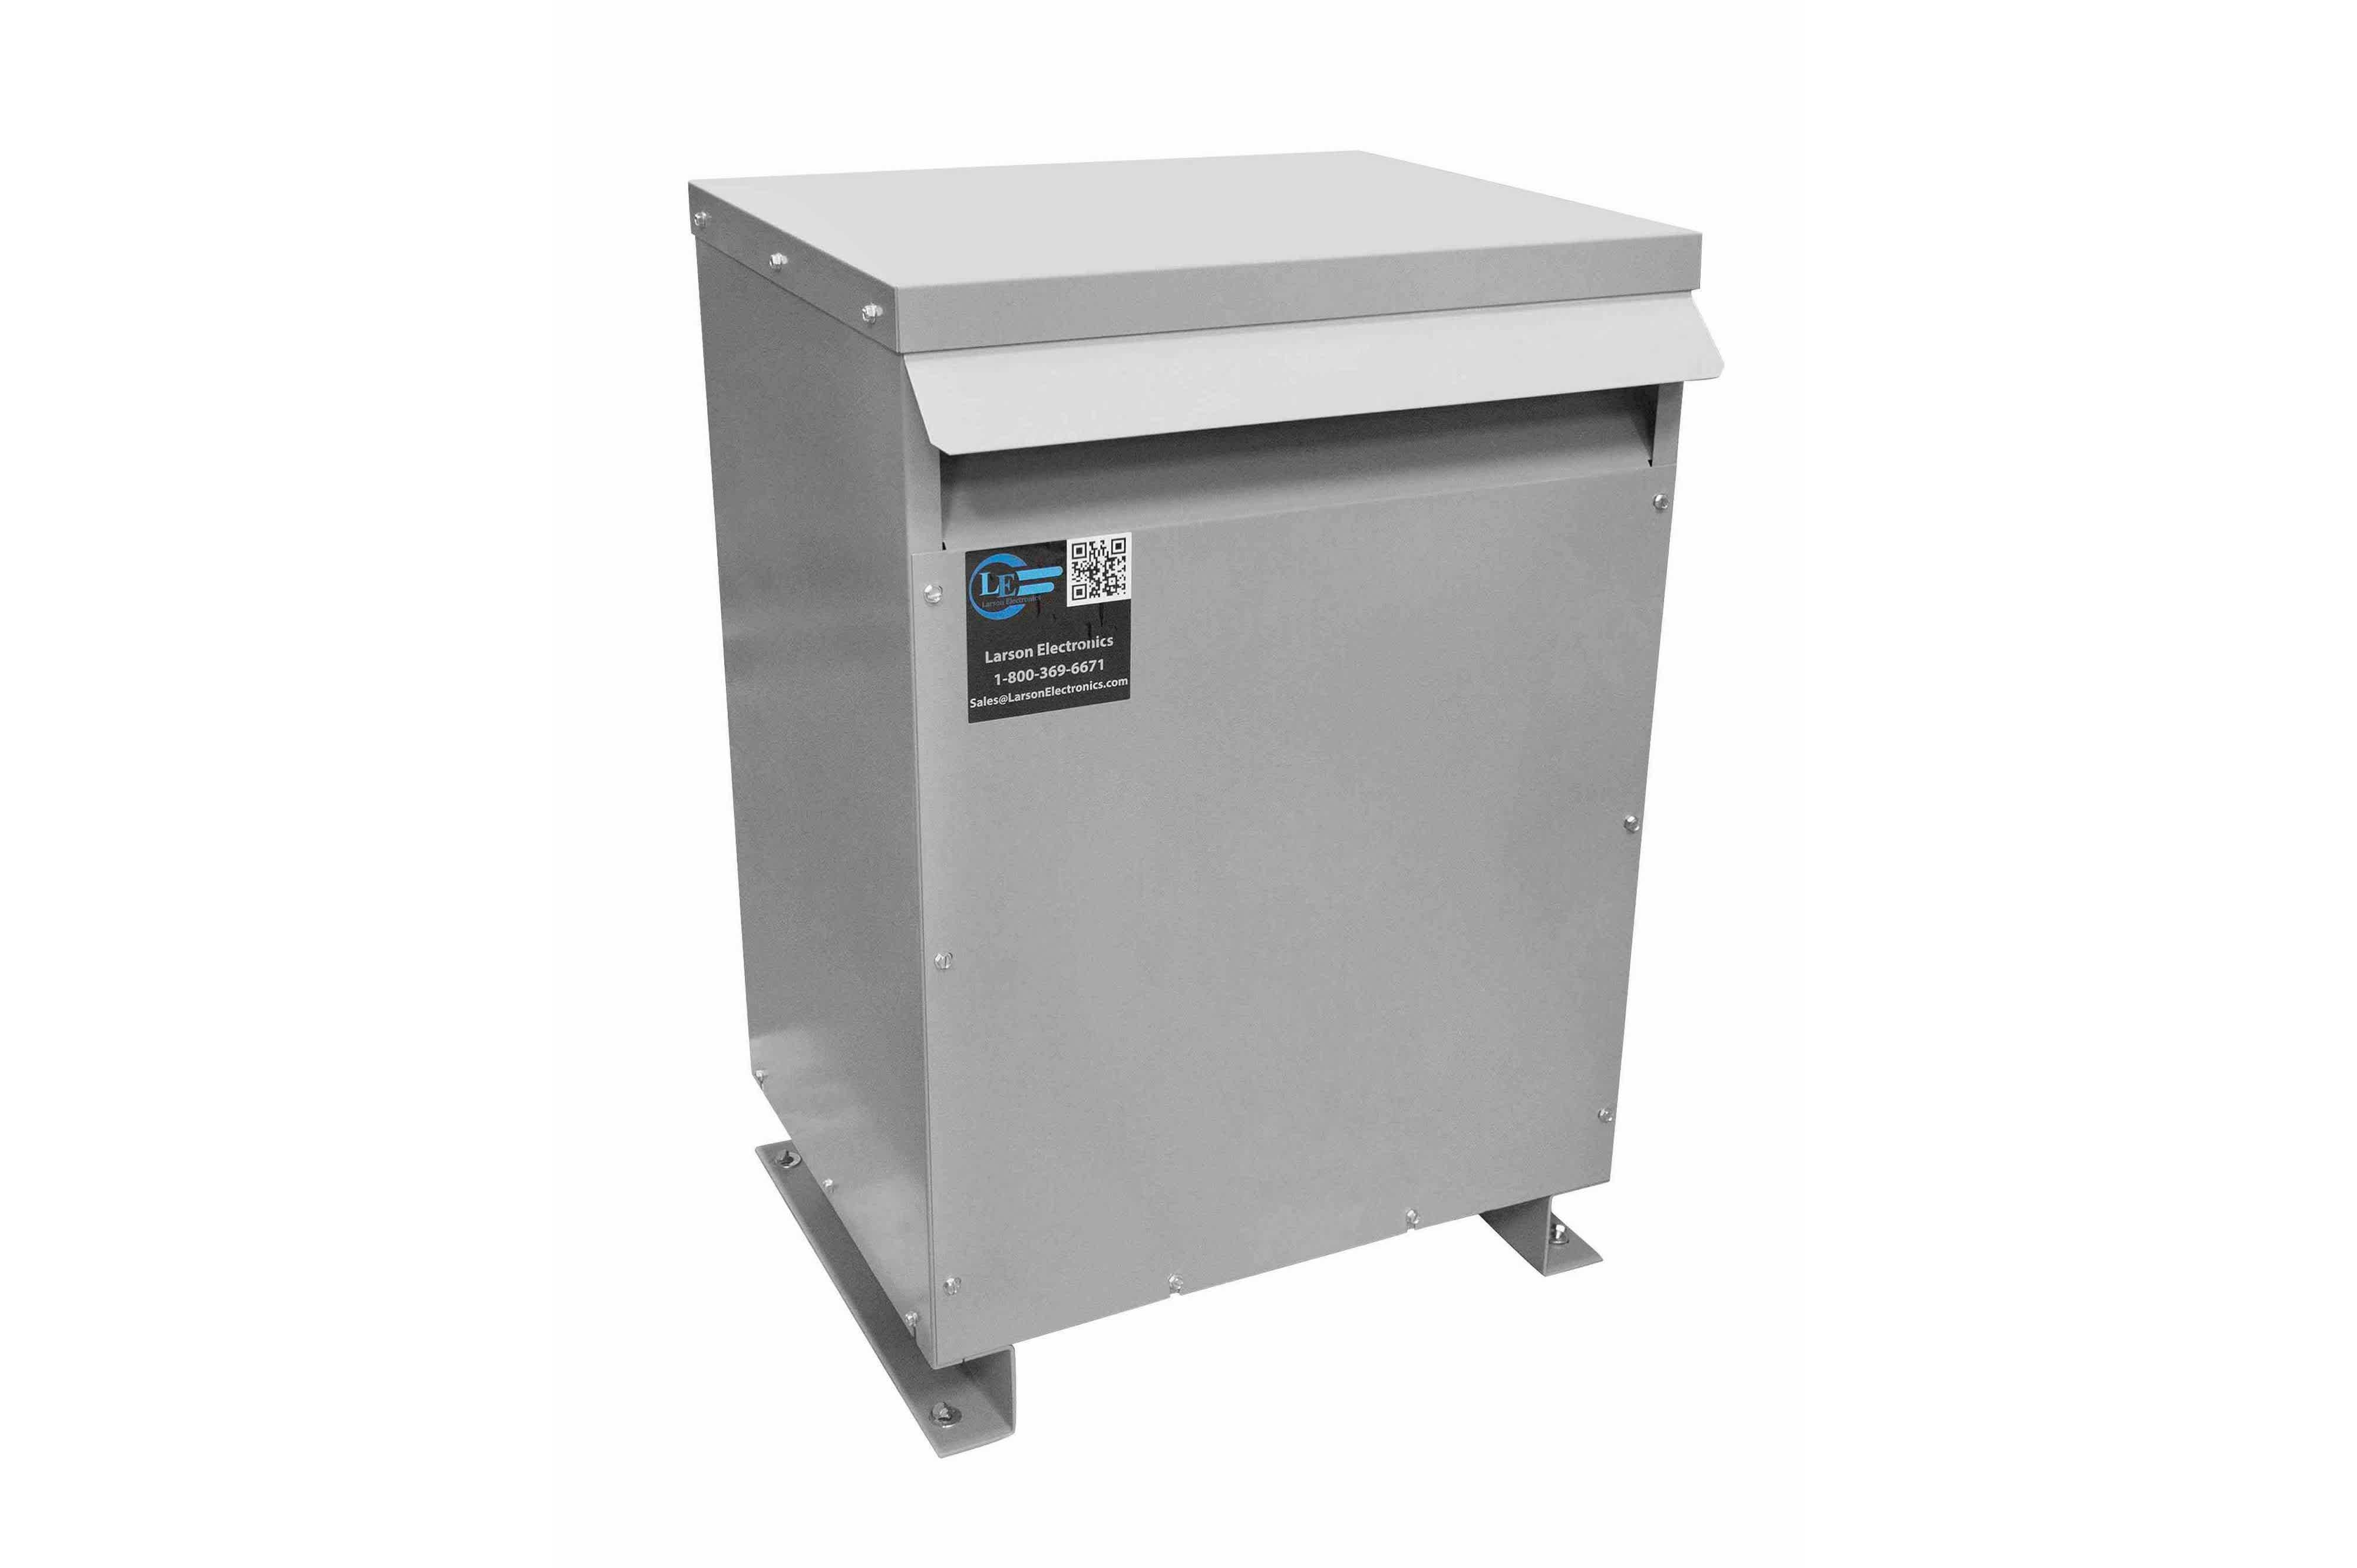 75 kVA 3PH Isolation Transformer, 240V Wye Primary, 600V Delta Secondary, N3R, Ventilated, 60 Hz